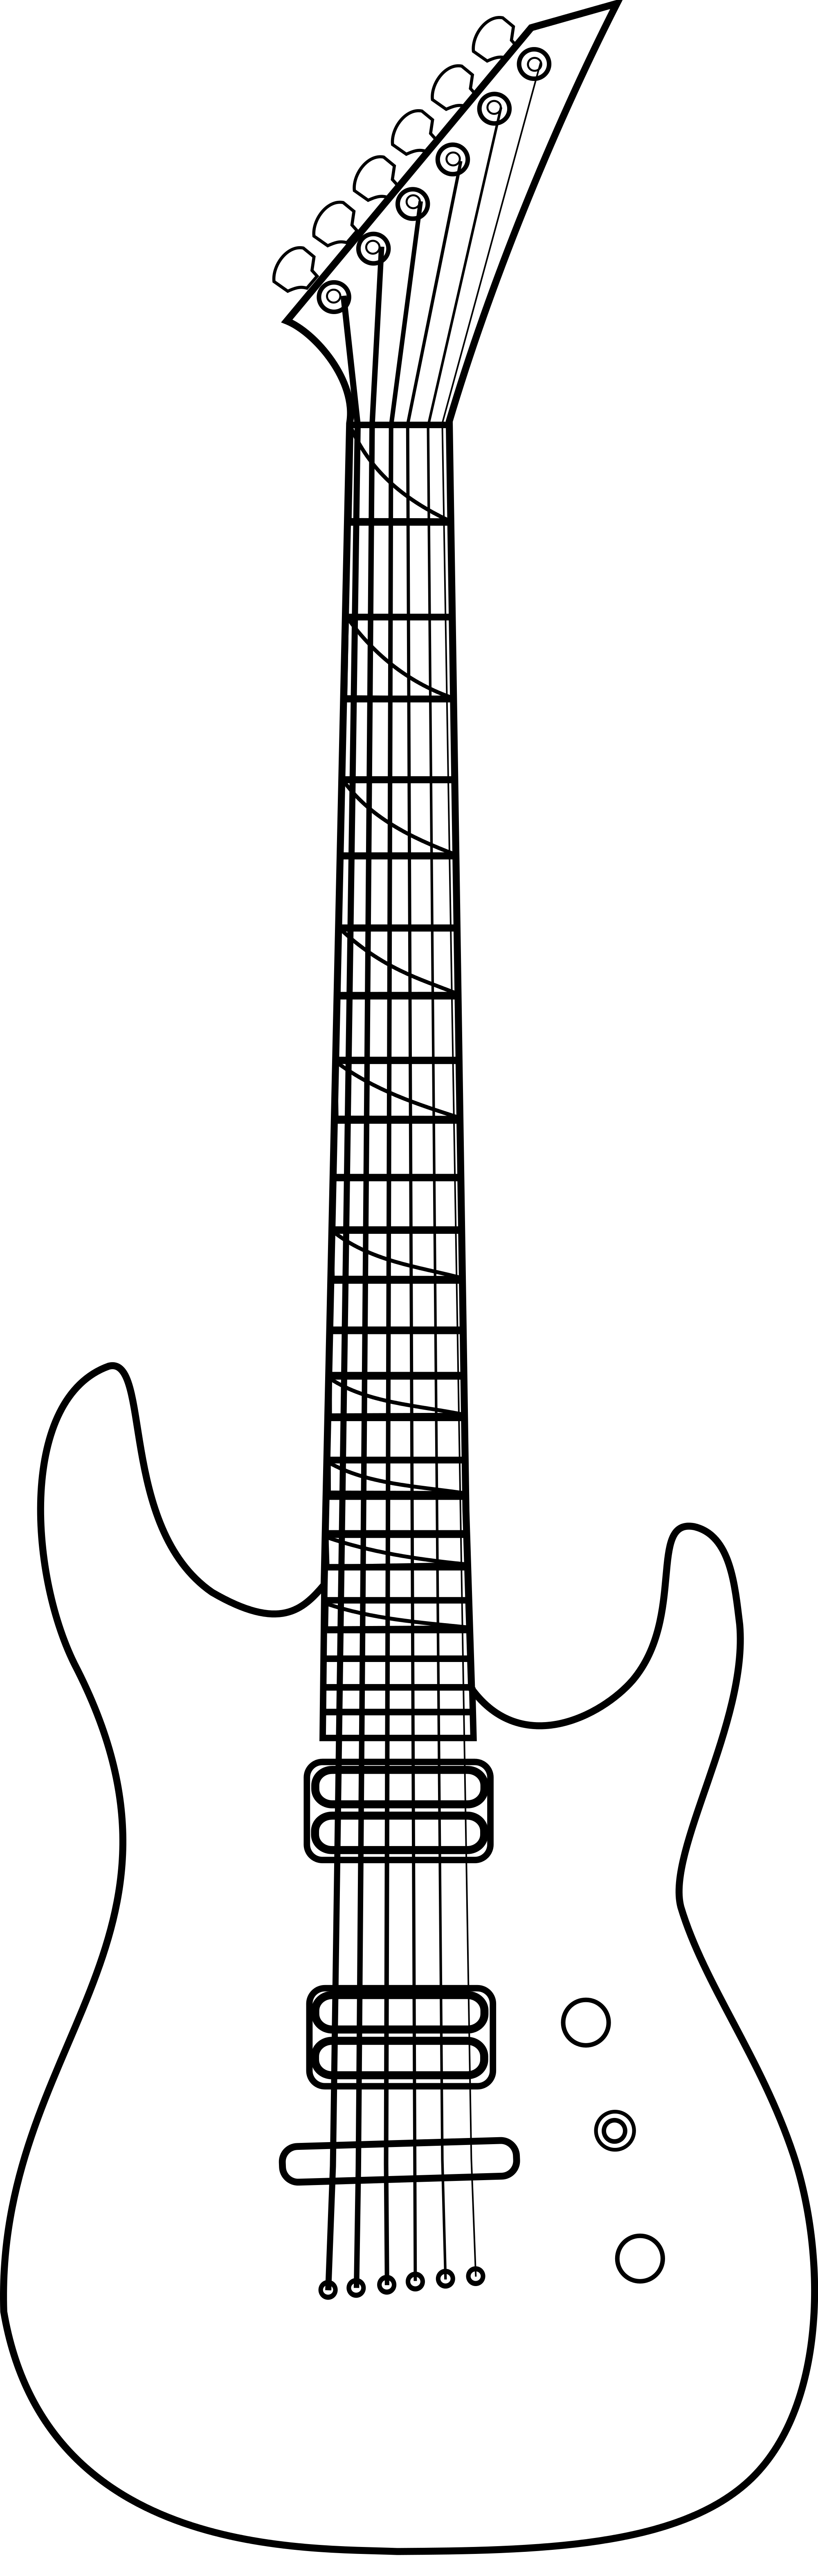 Guitar outline png. File jackson soloist shape